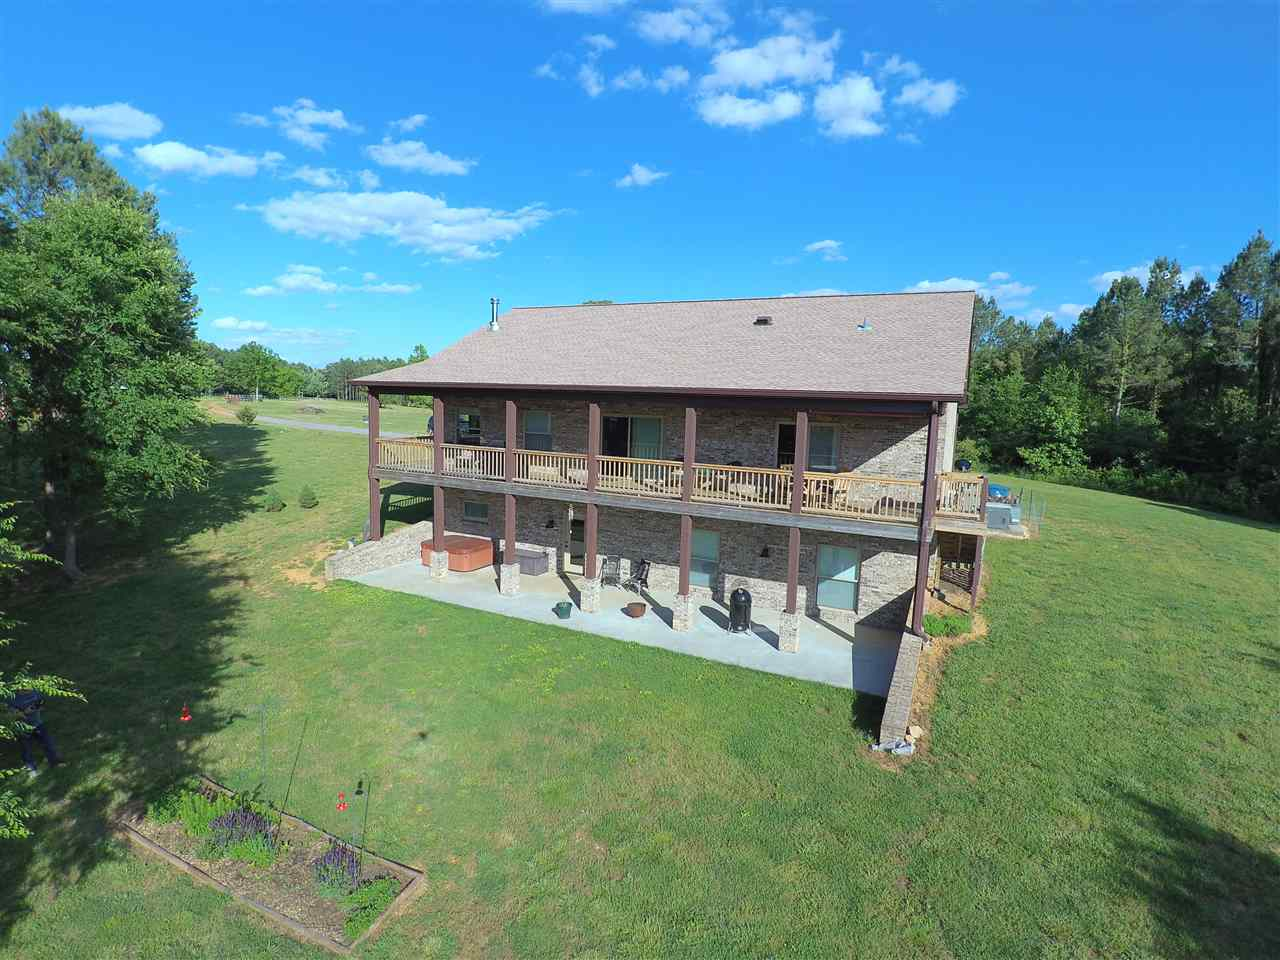 Image of Residential for Sale near New Concord, Kentucky, in Calloway county: 142.00 acres